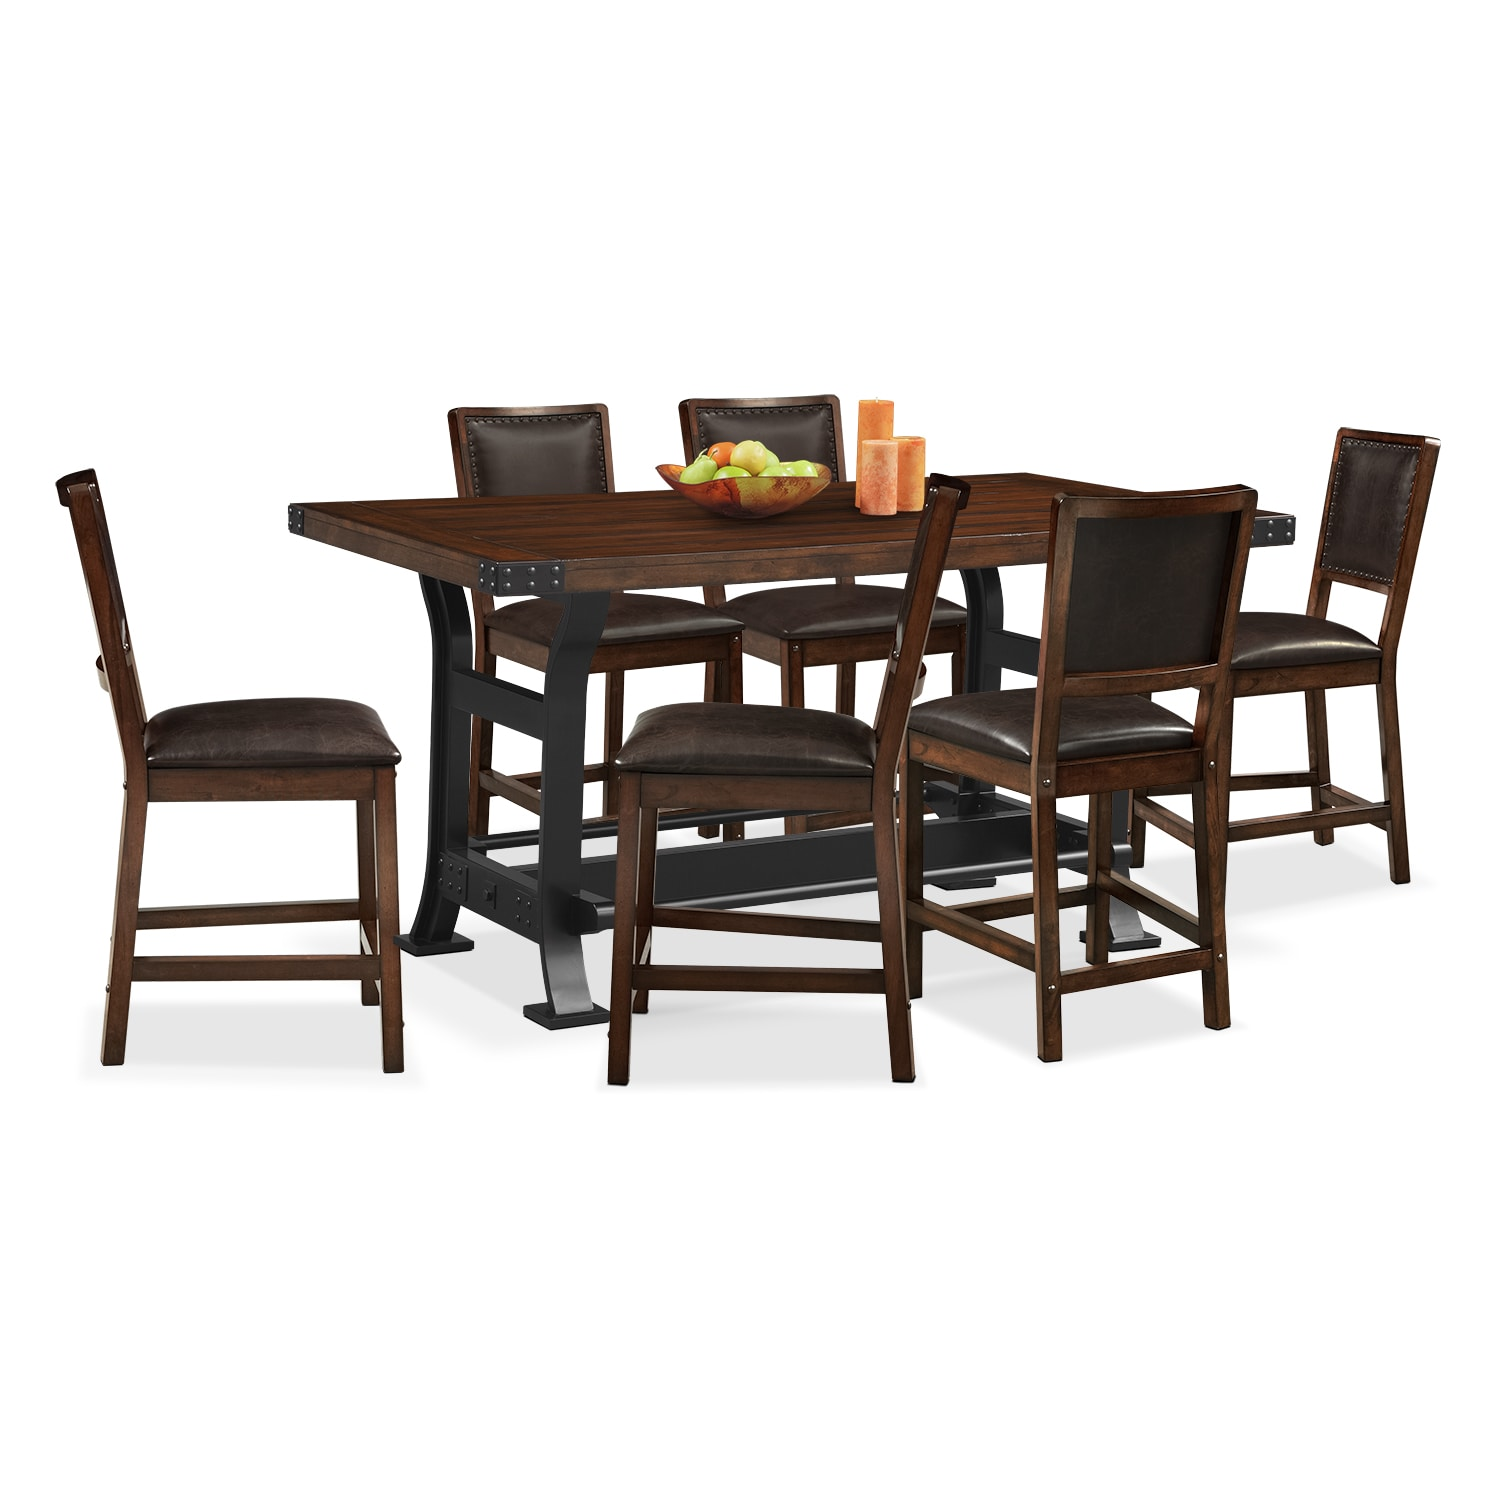 Newcastle CounterHeight Table and 6 ChairsMahoganyValue